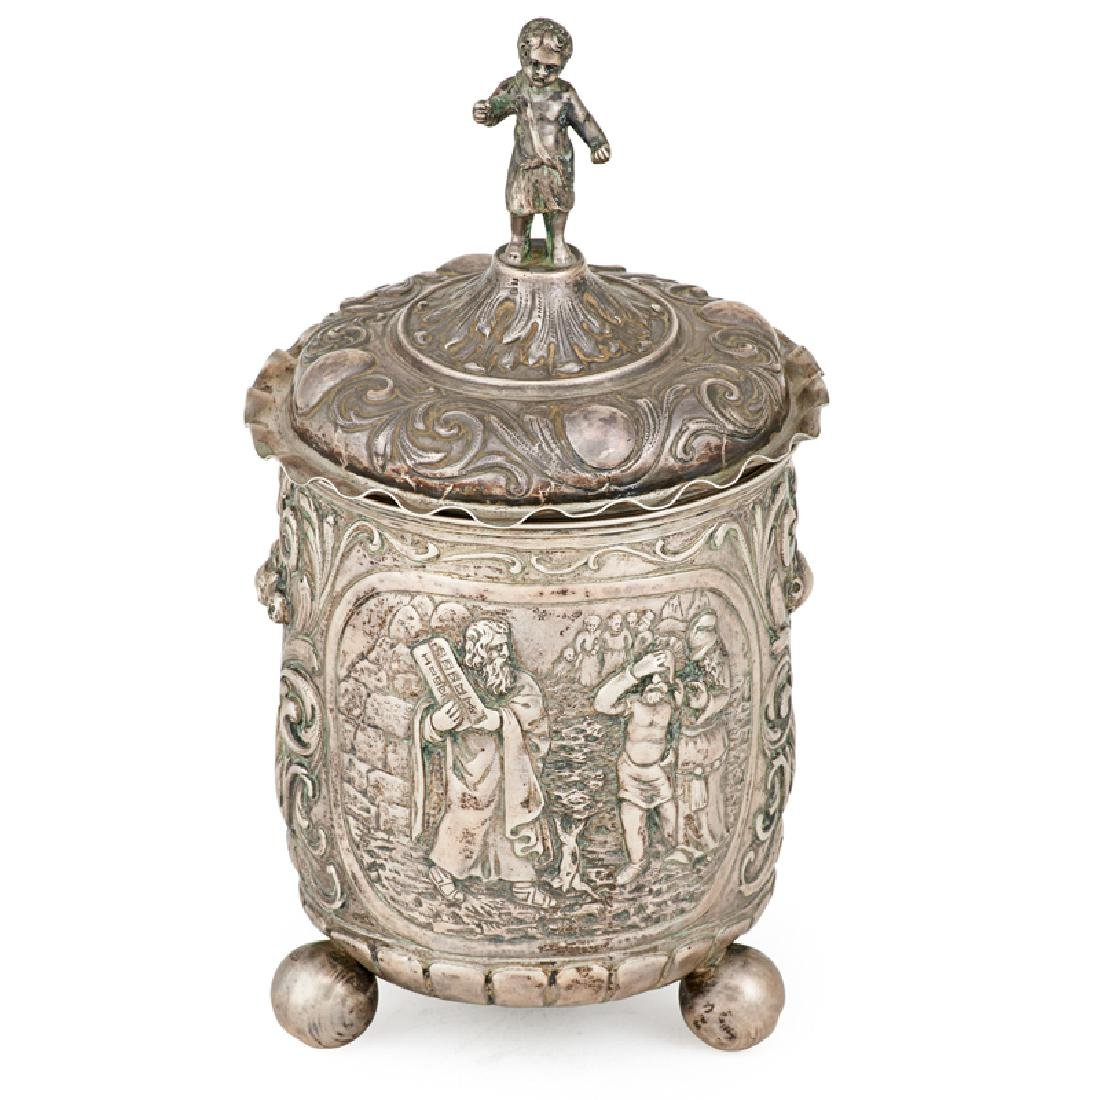 SILVER REPOUSSE COVERED BEAKER